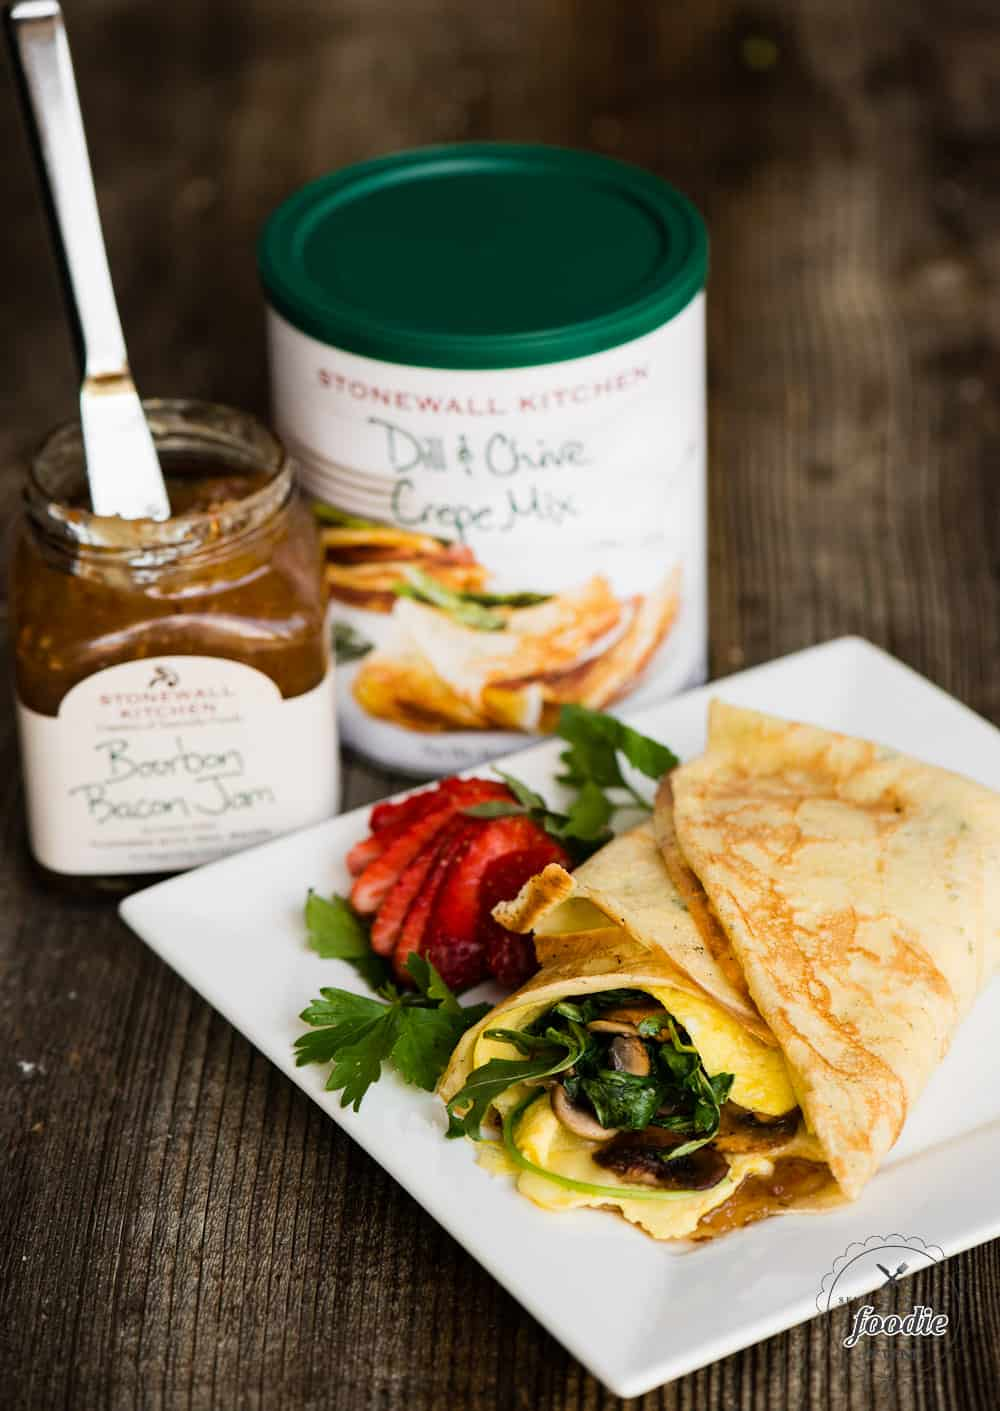 How to use Stonewall Kitchen dill and chive crepe mix, bourbon bacon jam for an egg breakfast